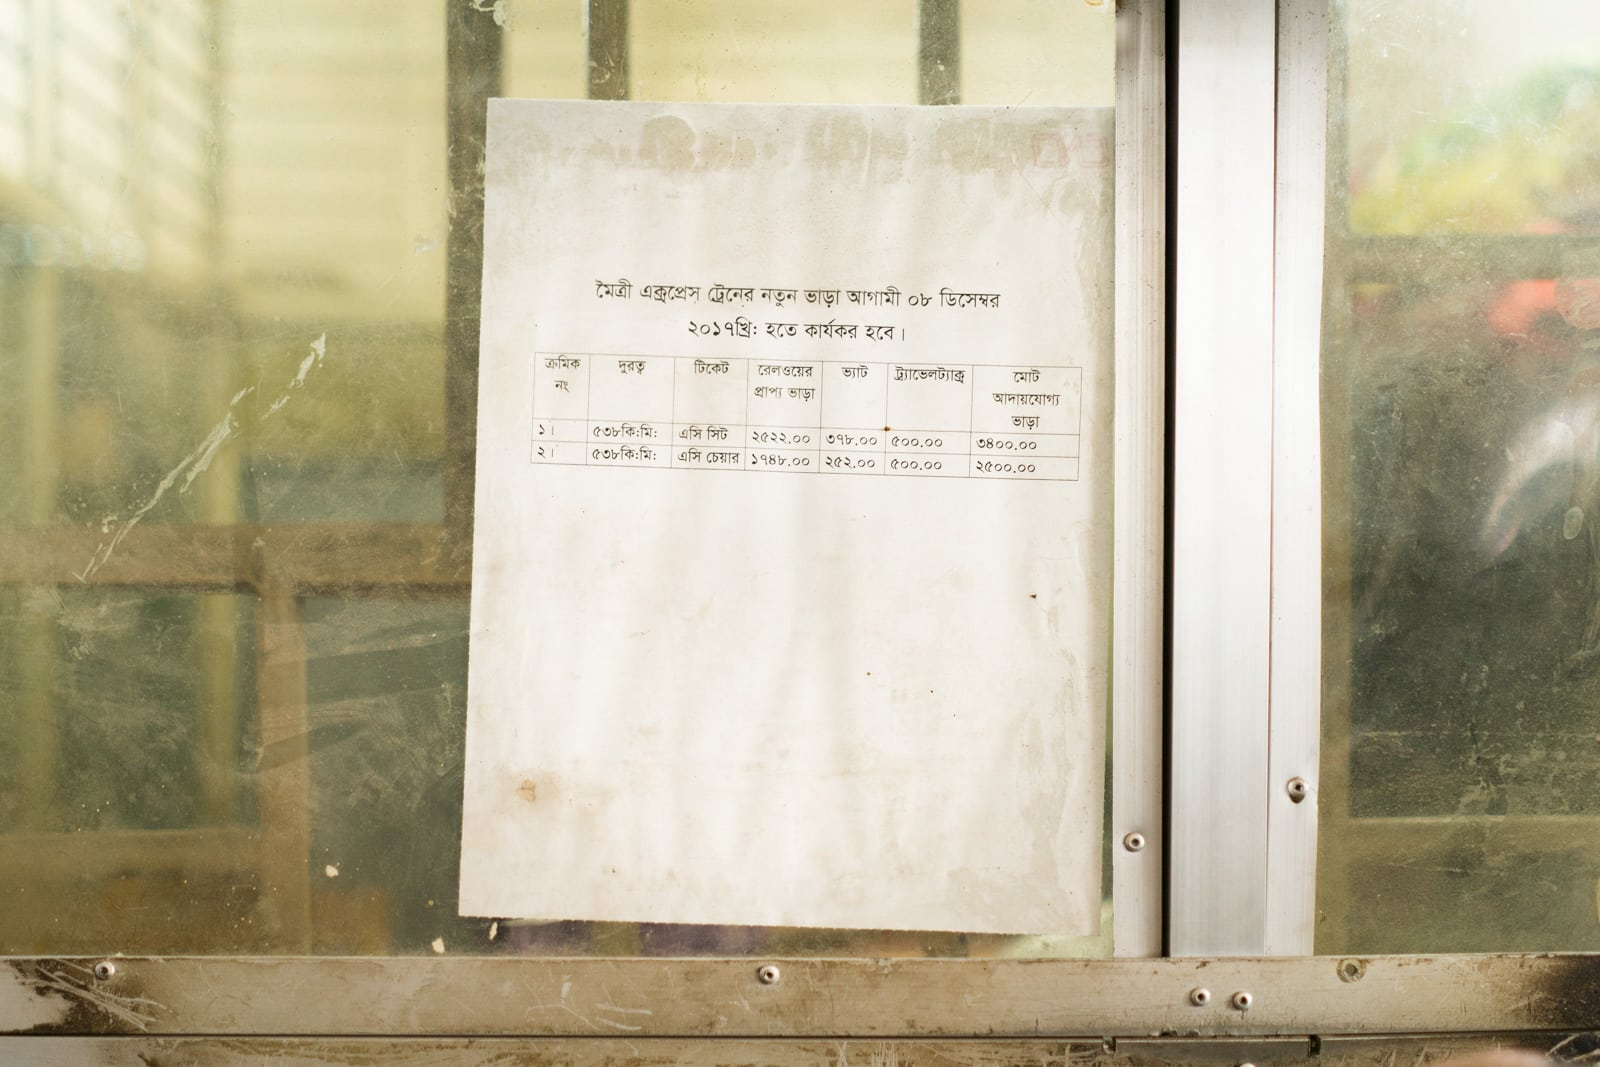 How to take the train from Dhaka to Kolkata - Price of tickets in Bangla - Lost With Purpose travel blog